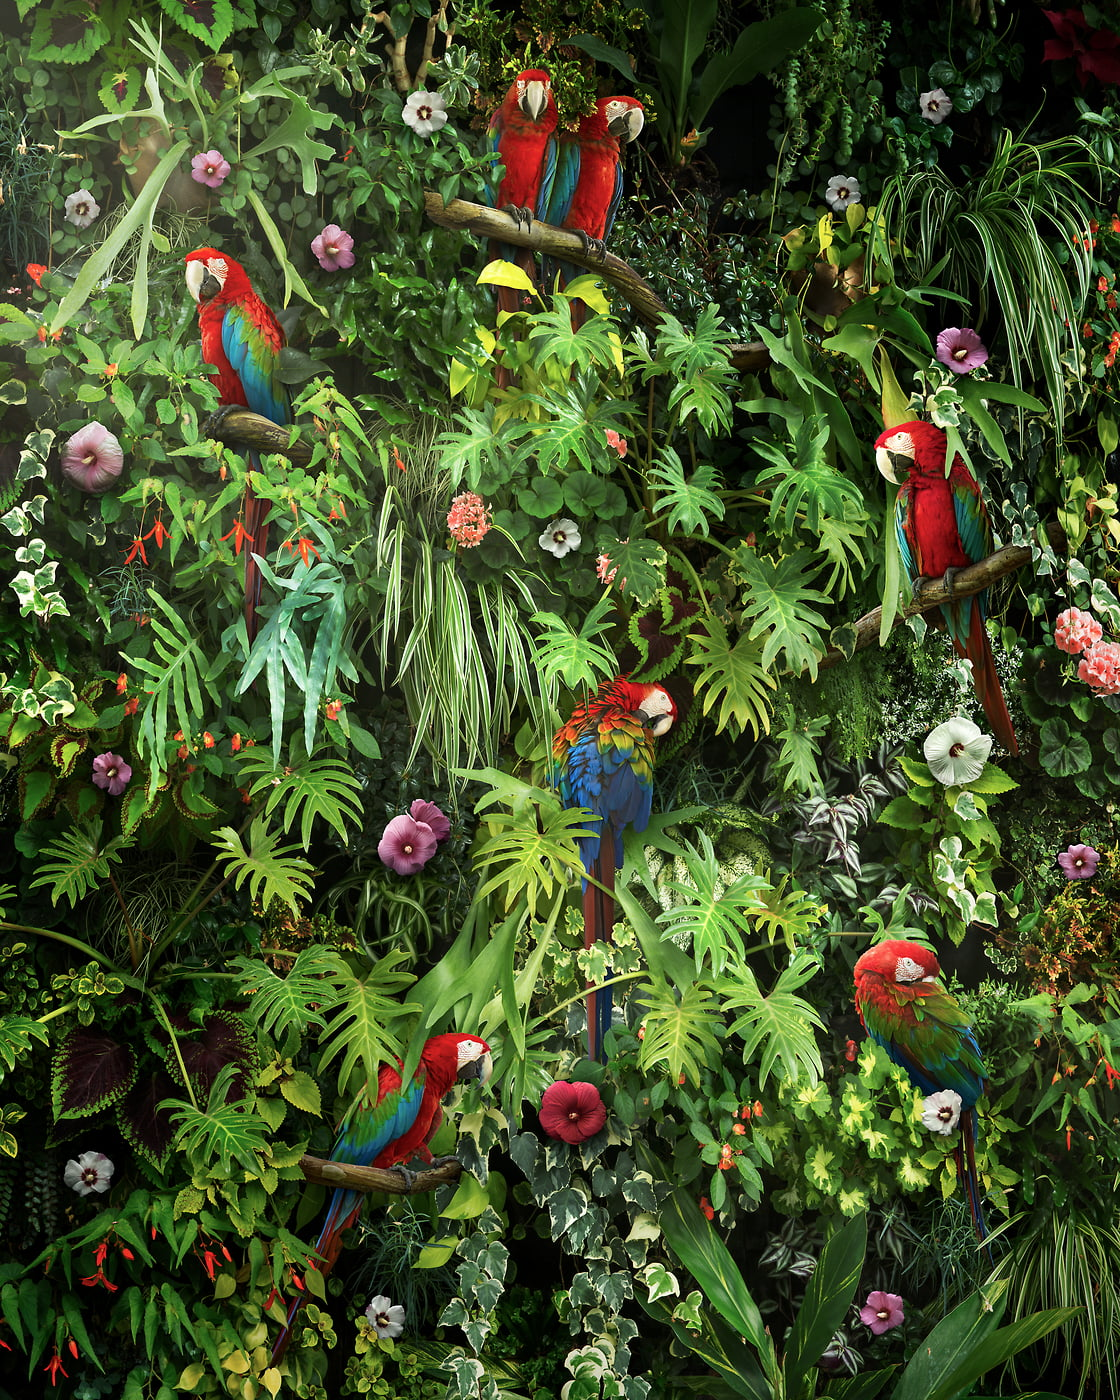 180 megapixels! A very high resolution nature artwork of a living wall with foliage, flowers, plants, greenery, ferns, parrots, macaws and birds; artwork created by artist Nick Pedersen